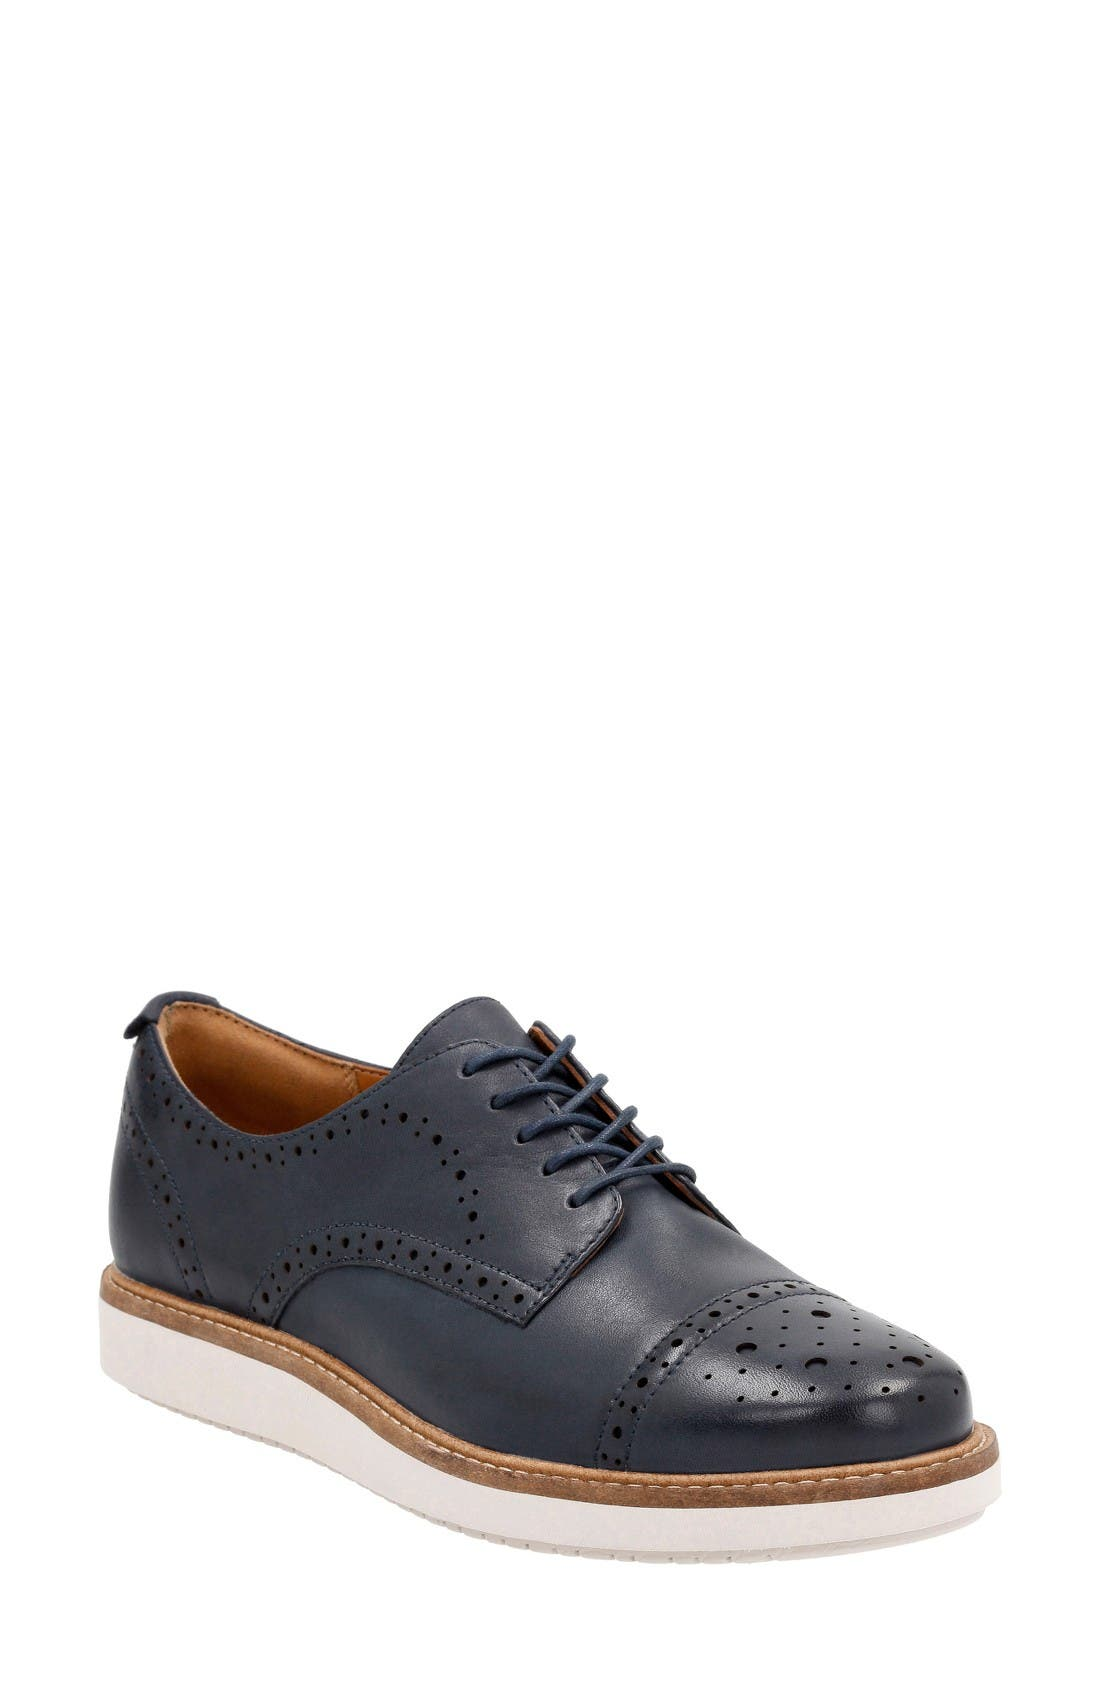 Alternate Image 1 Selected - Clarks® Glick Shine Oxford (Women)